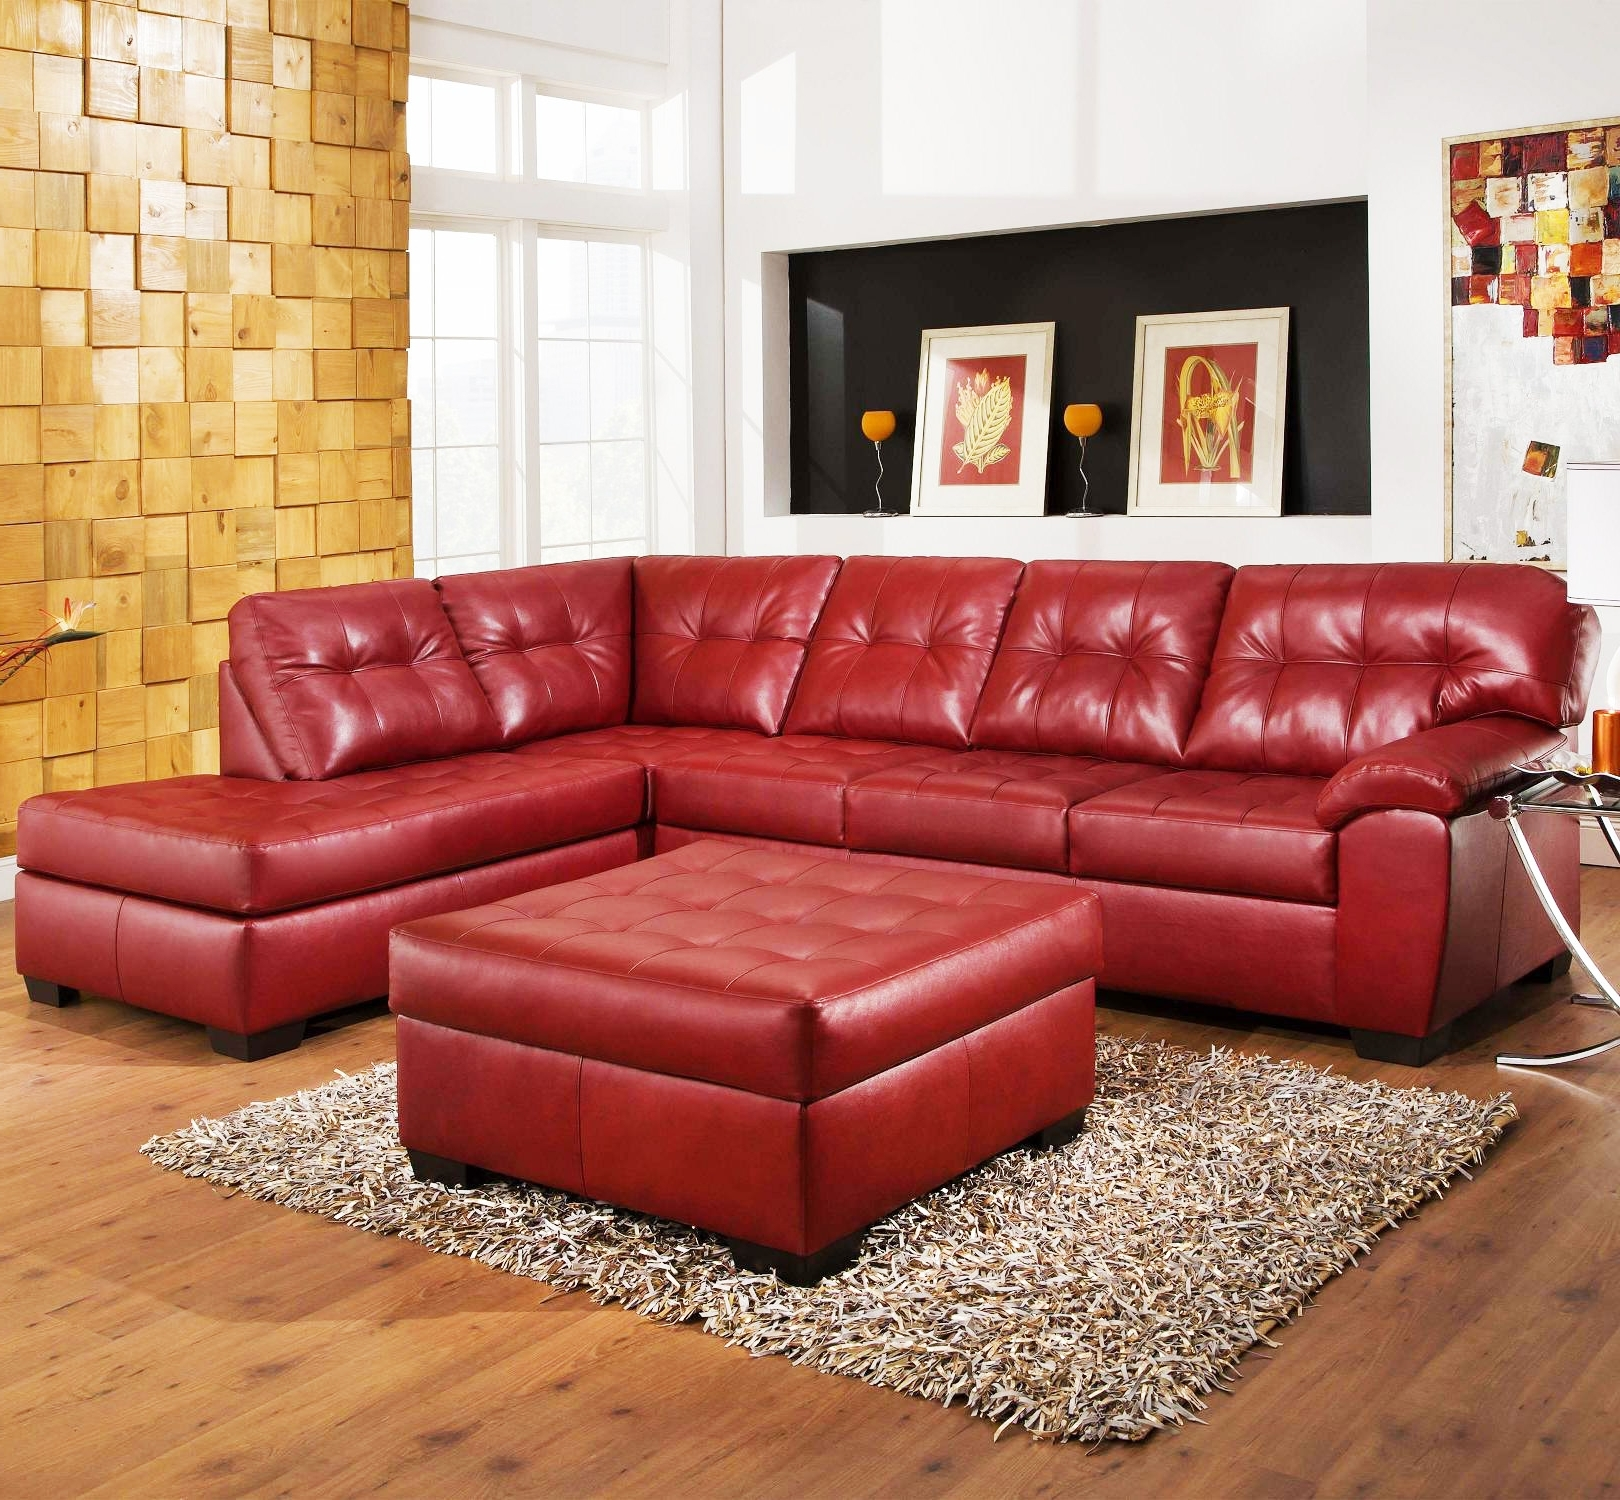 Most Up To Date Red Leather Sofas With Regard To Sofas : Sectional Couch Small Sectional Couch Red Sectional Couch (View 15 of 20)